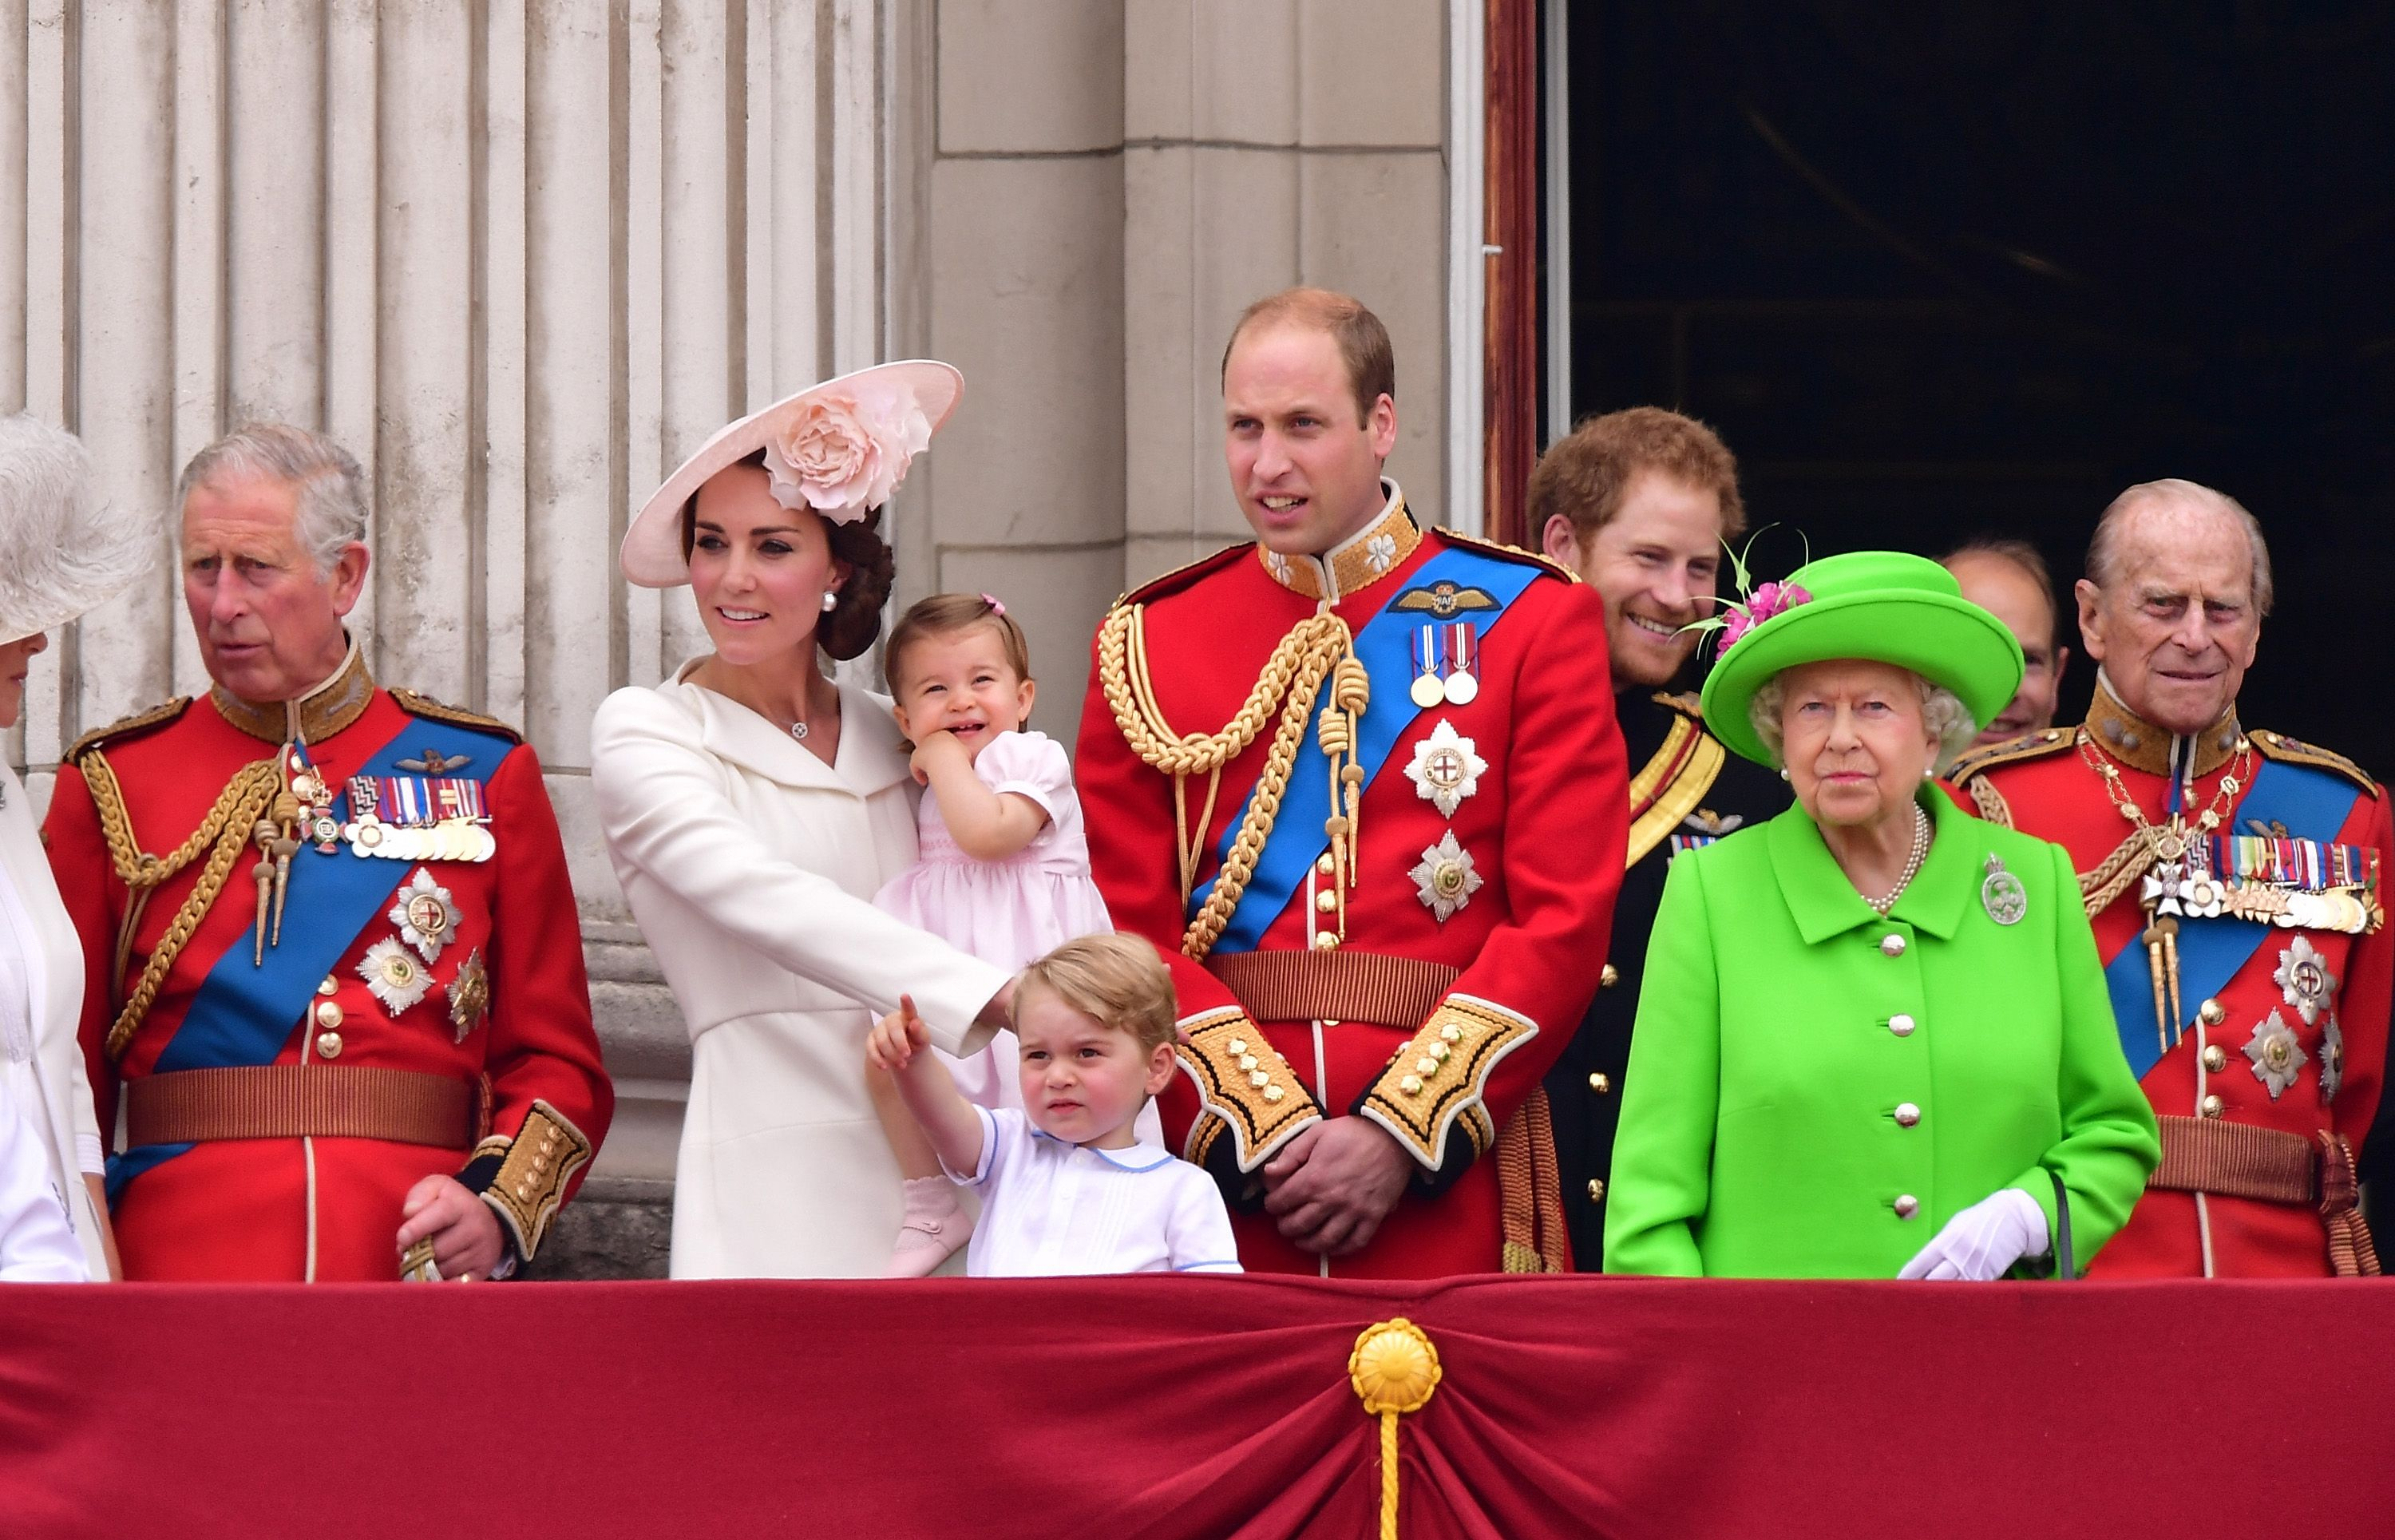 Prince Charles, Catherine, Duchess of Cambridge, Princess Charlotte, Prince George, Prince William, Prince Harry, Queen Elizabeth II and Prince Philip on the balcony during the Trooping the Colour marking the Queen's 90th birthday at The Mall on June 11, 2016.   Getty Images